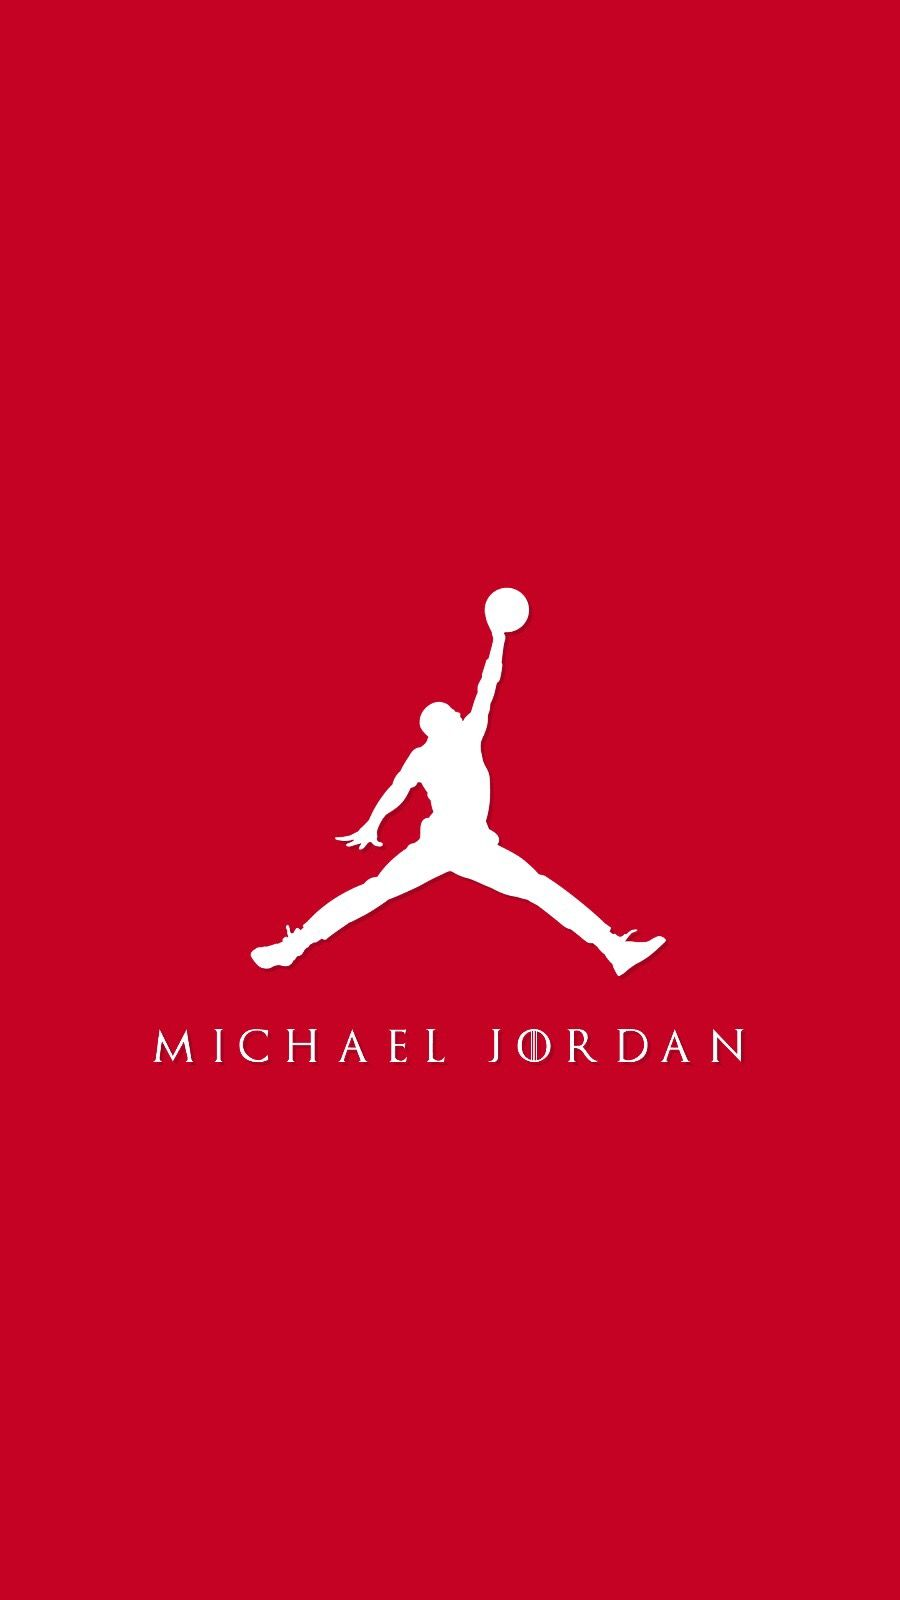 Michael Jordan 4k Wallpaper Jordan Logo Wallpaper Jordans Michael Jordan